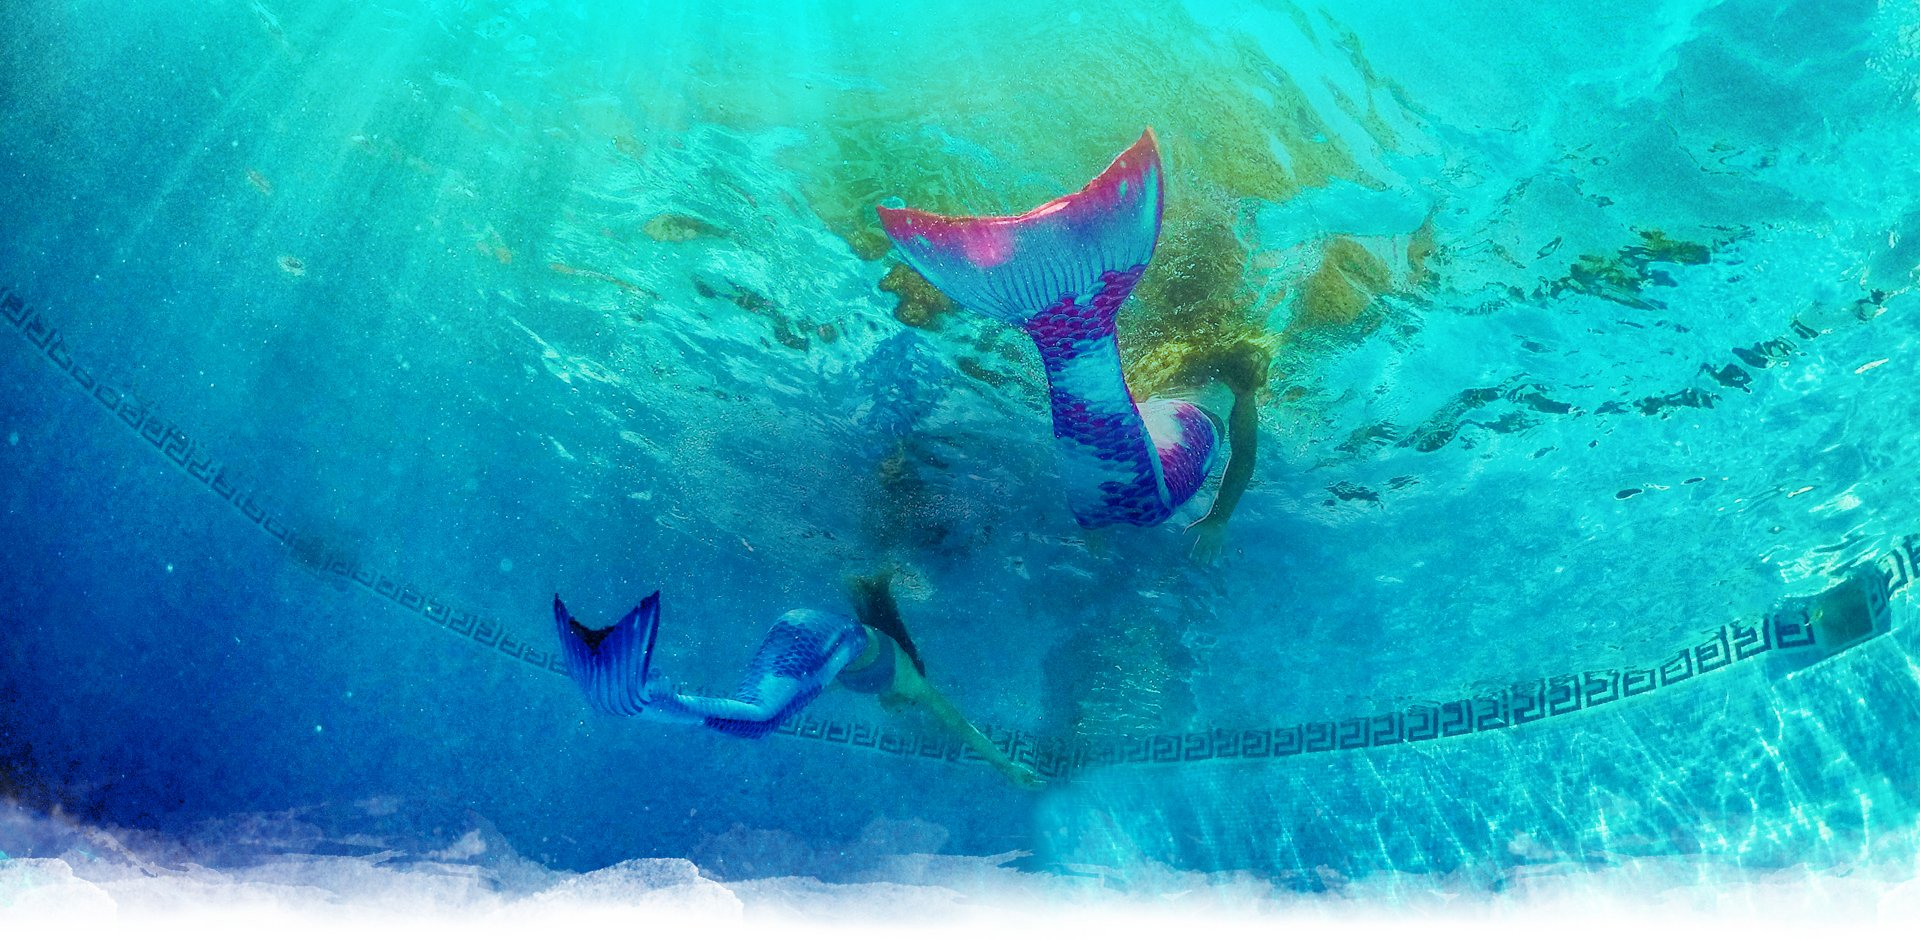 Mermaid Fin, Mermaid Swim and more Frequently Asked Questions